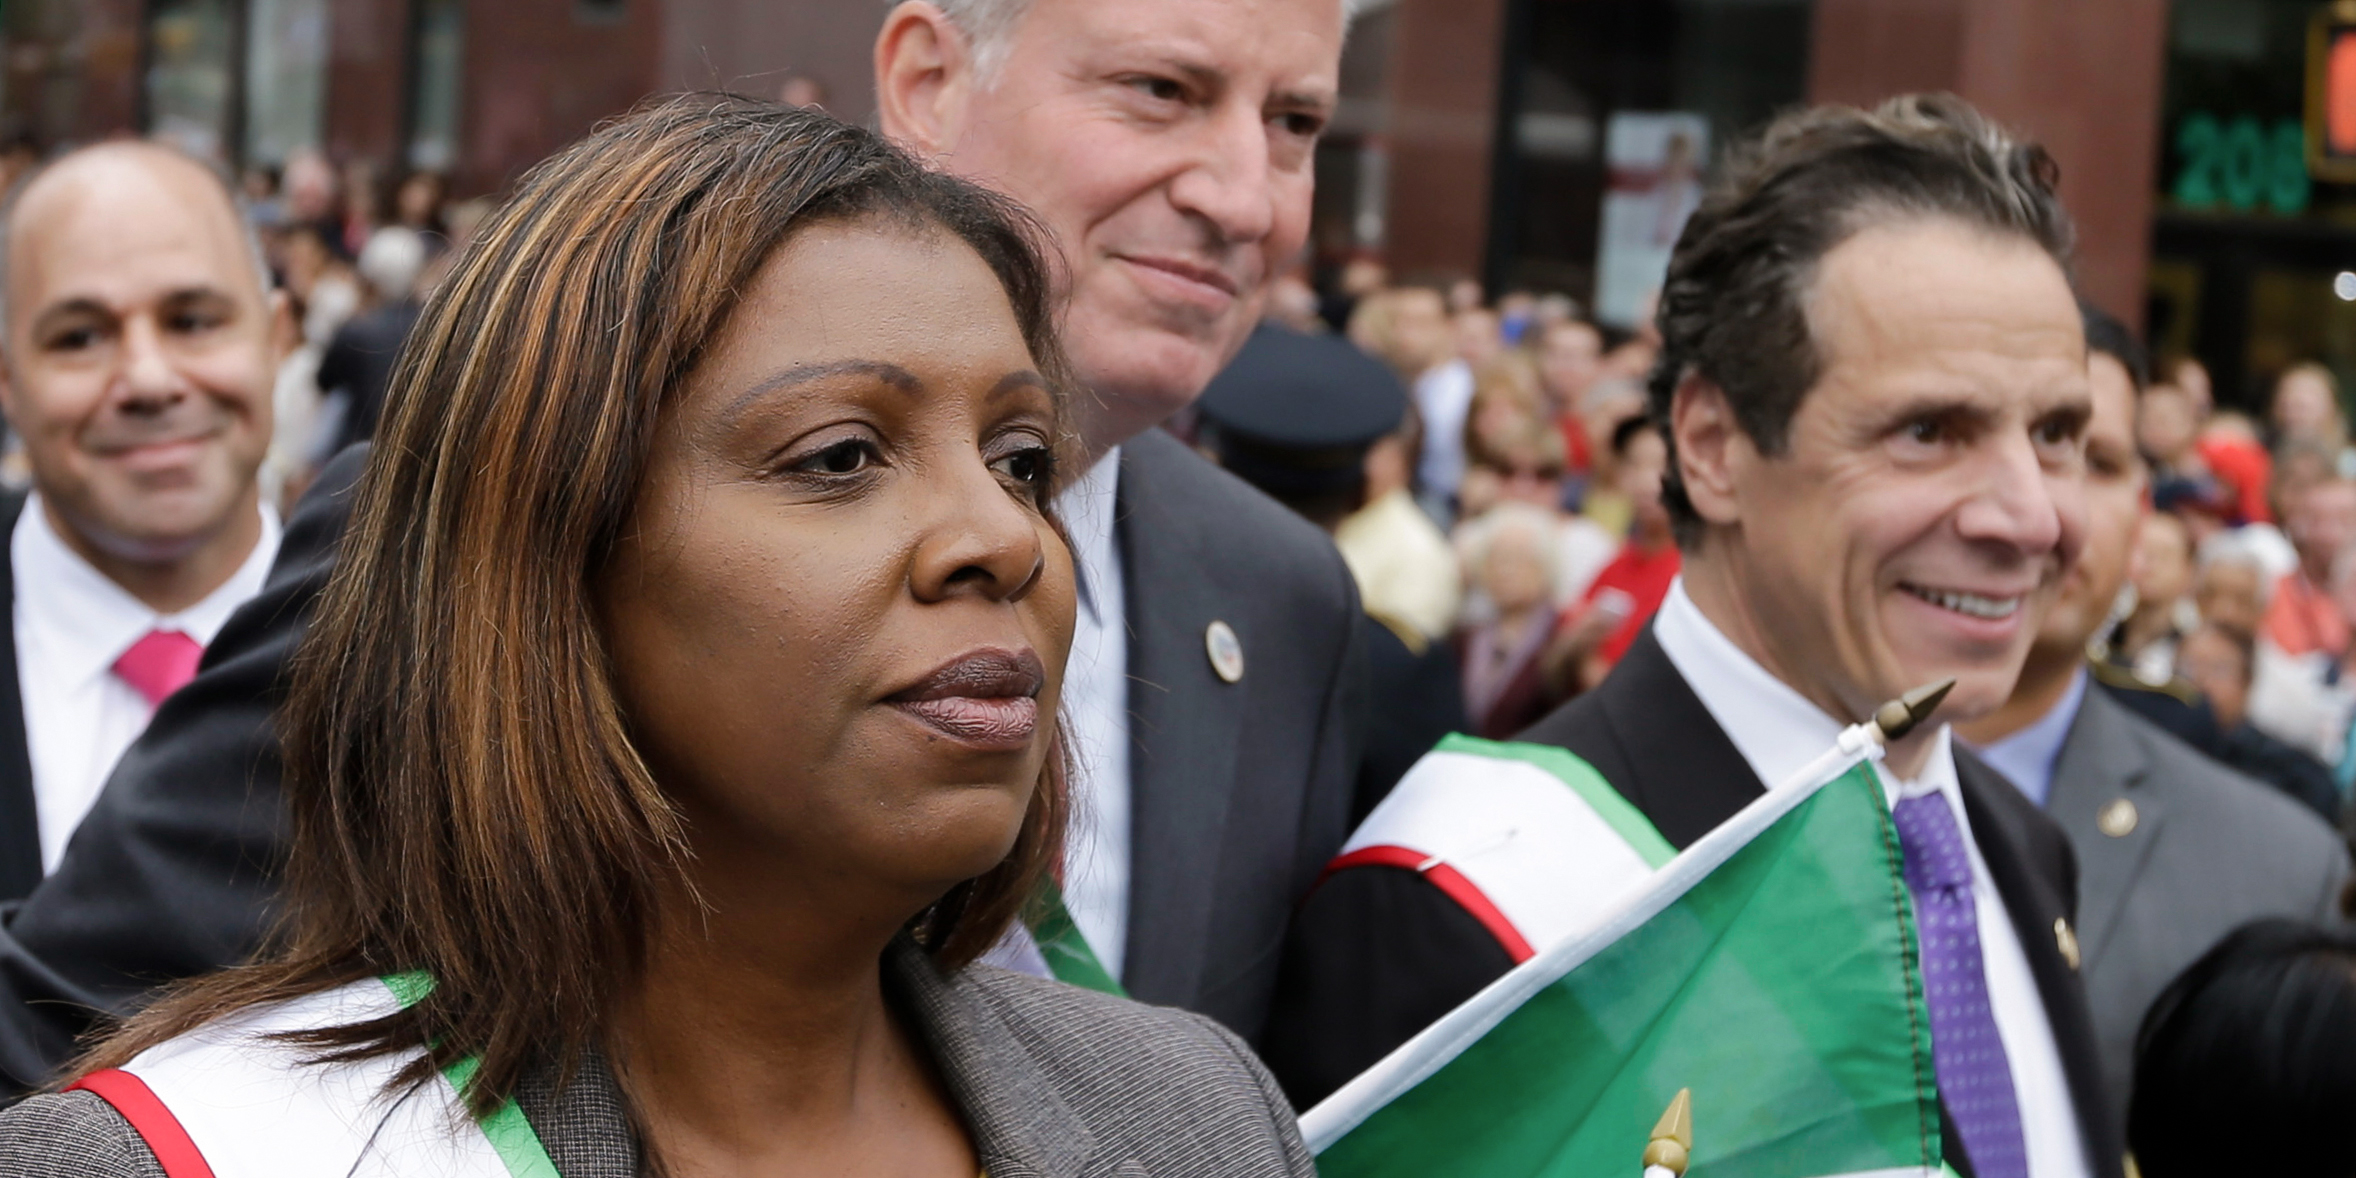 Andrew Cuomo Is Living to Regret the Deal He Pushed on Letitia James